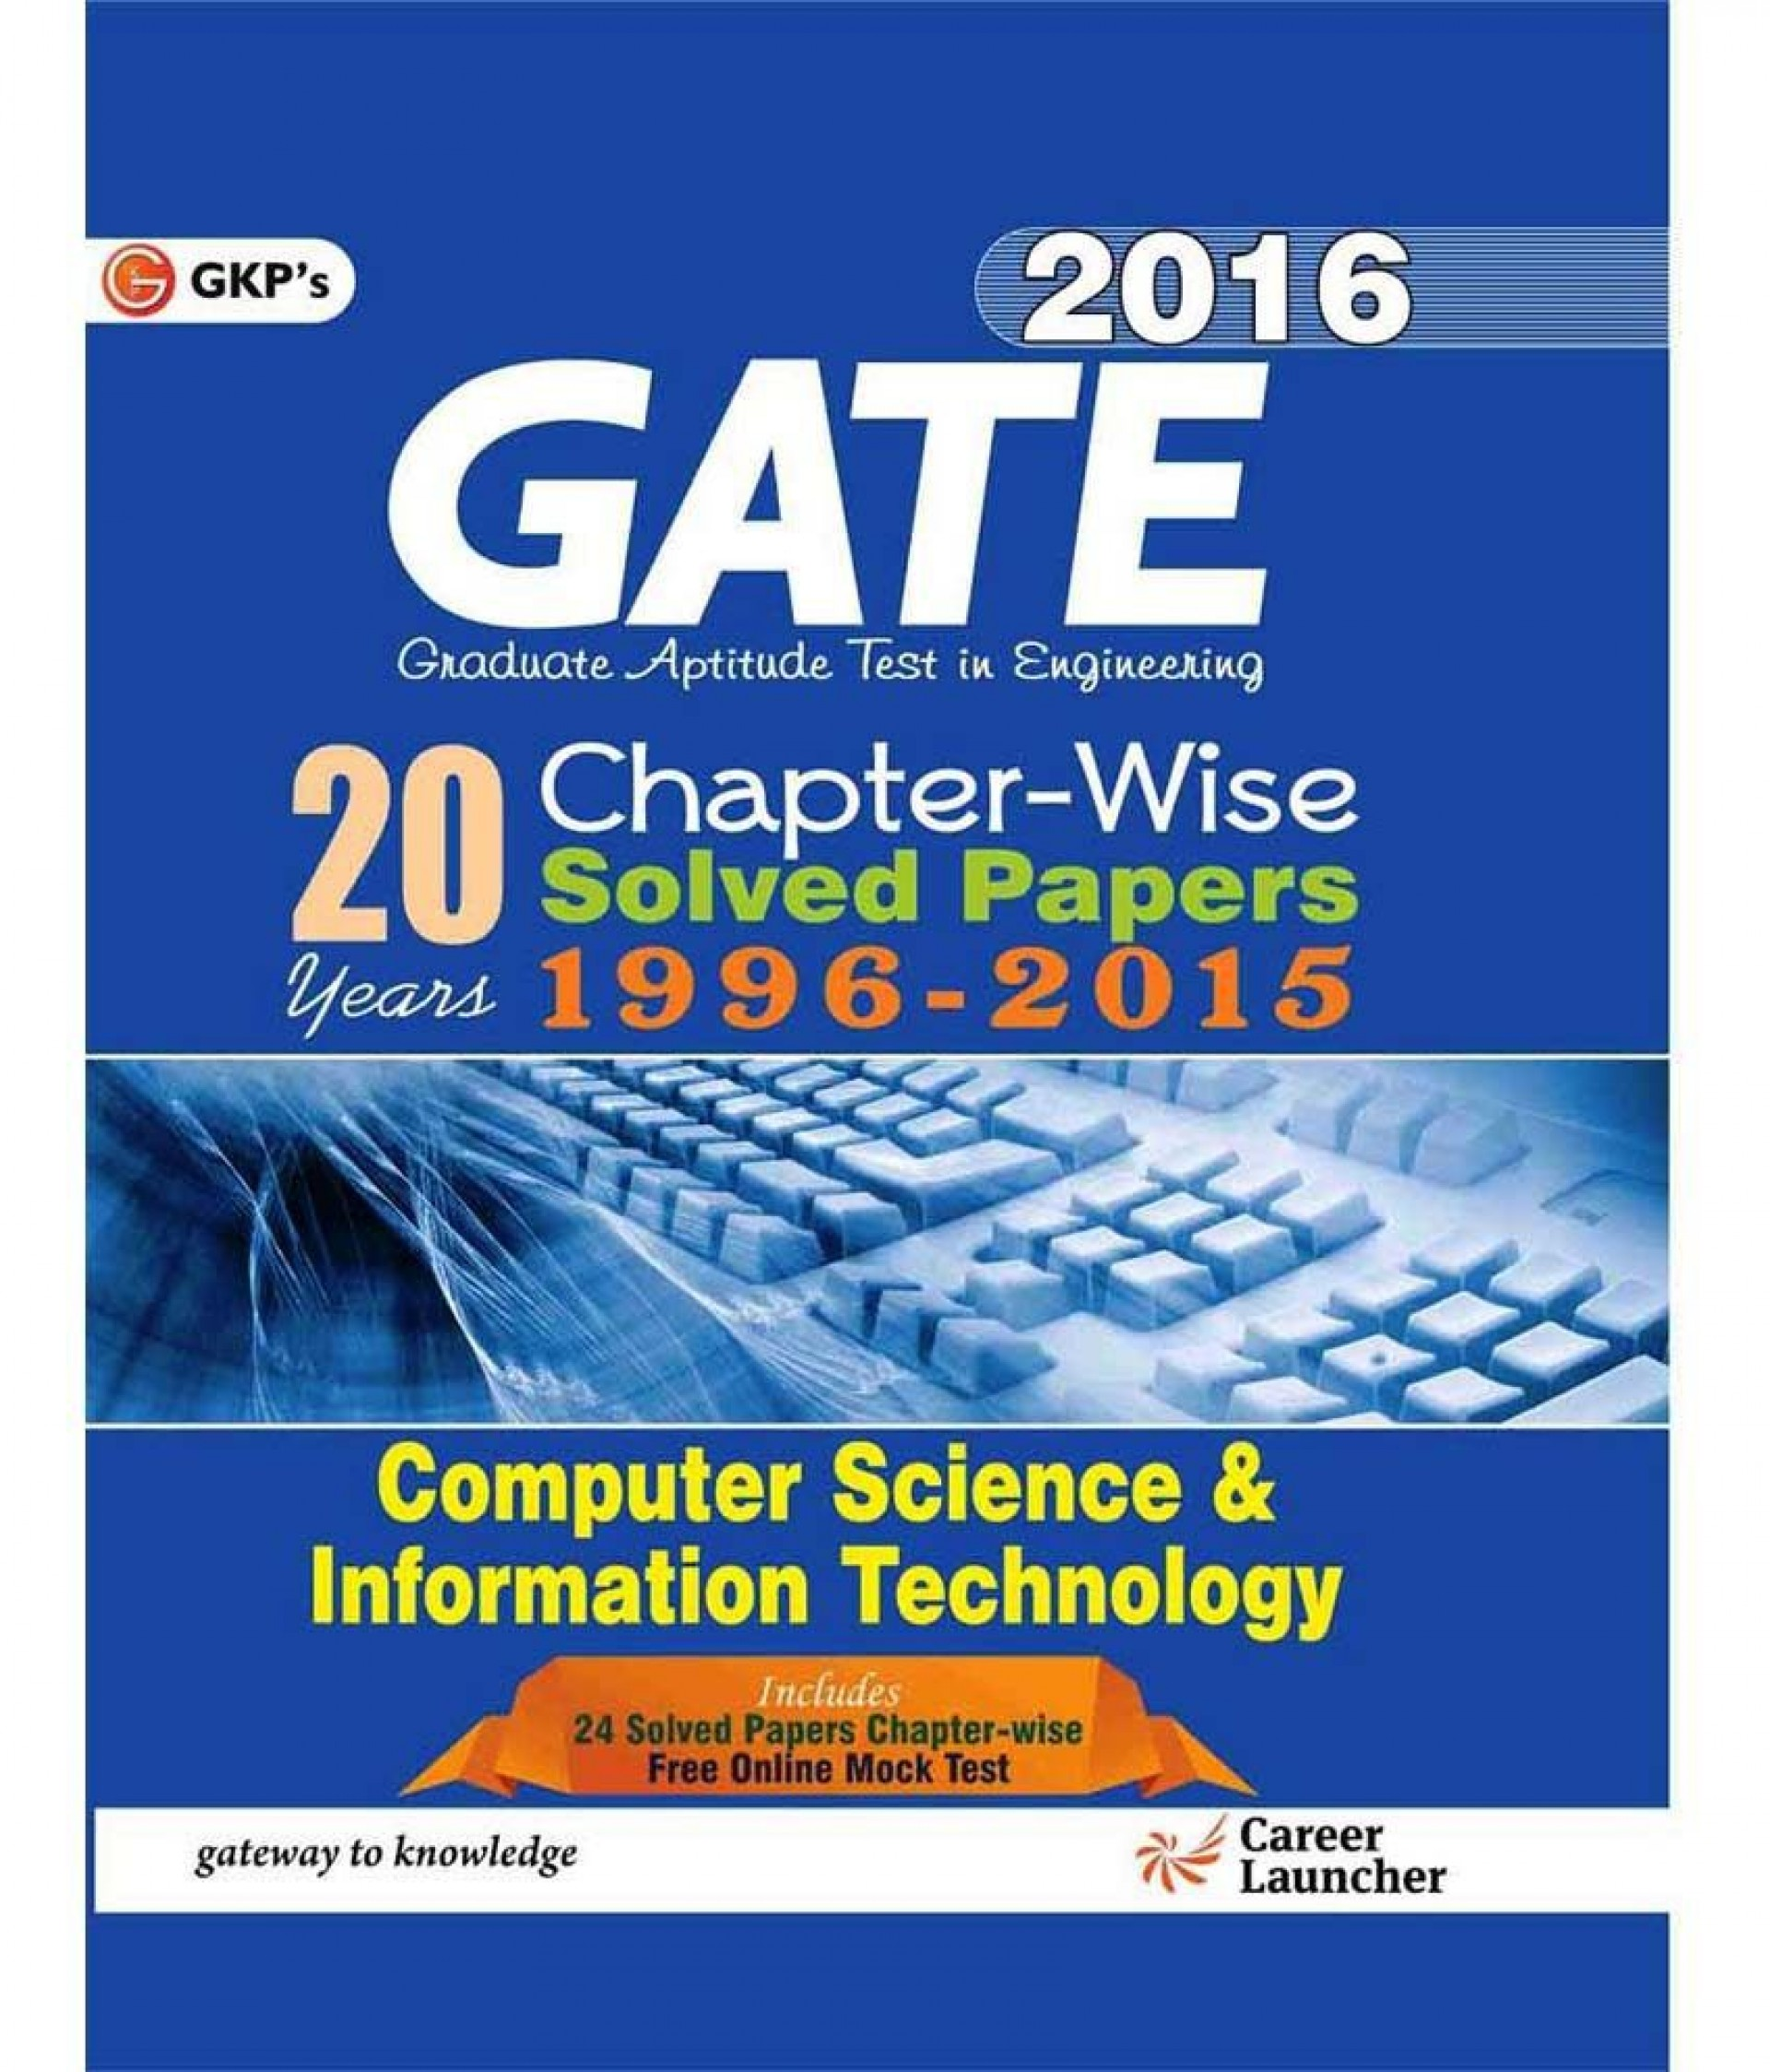 017 Gate Papers Computer Science It Sdl086822326 Essay Example Virginia Tech Outstanding Application 2017 2016 1920